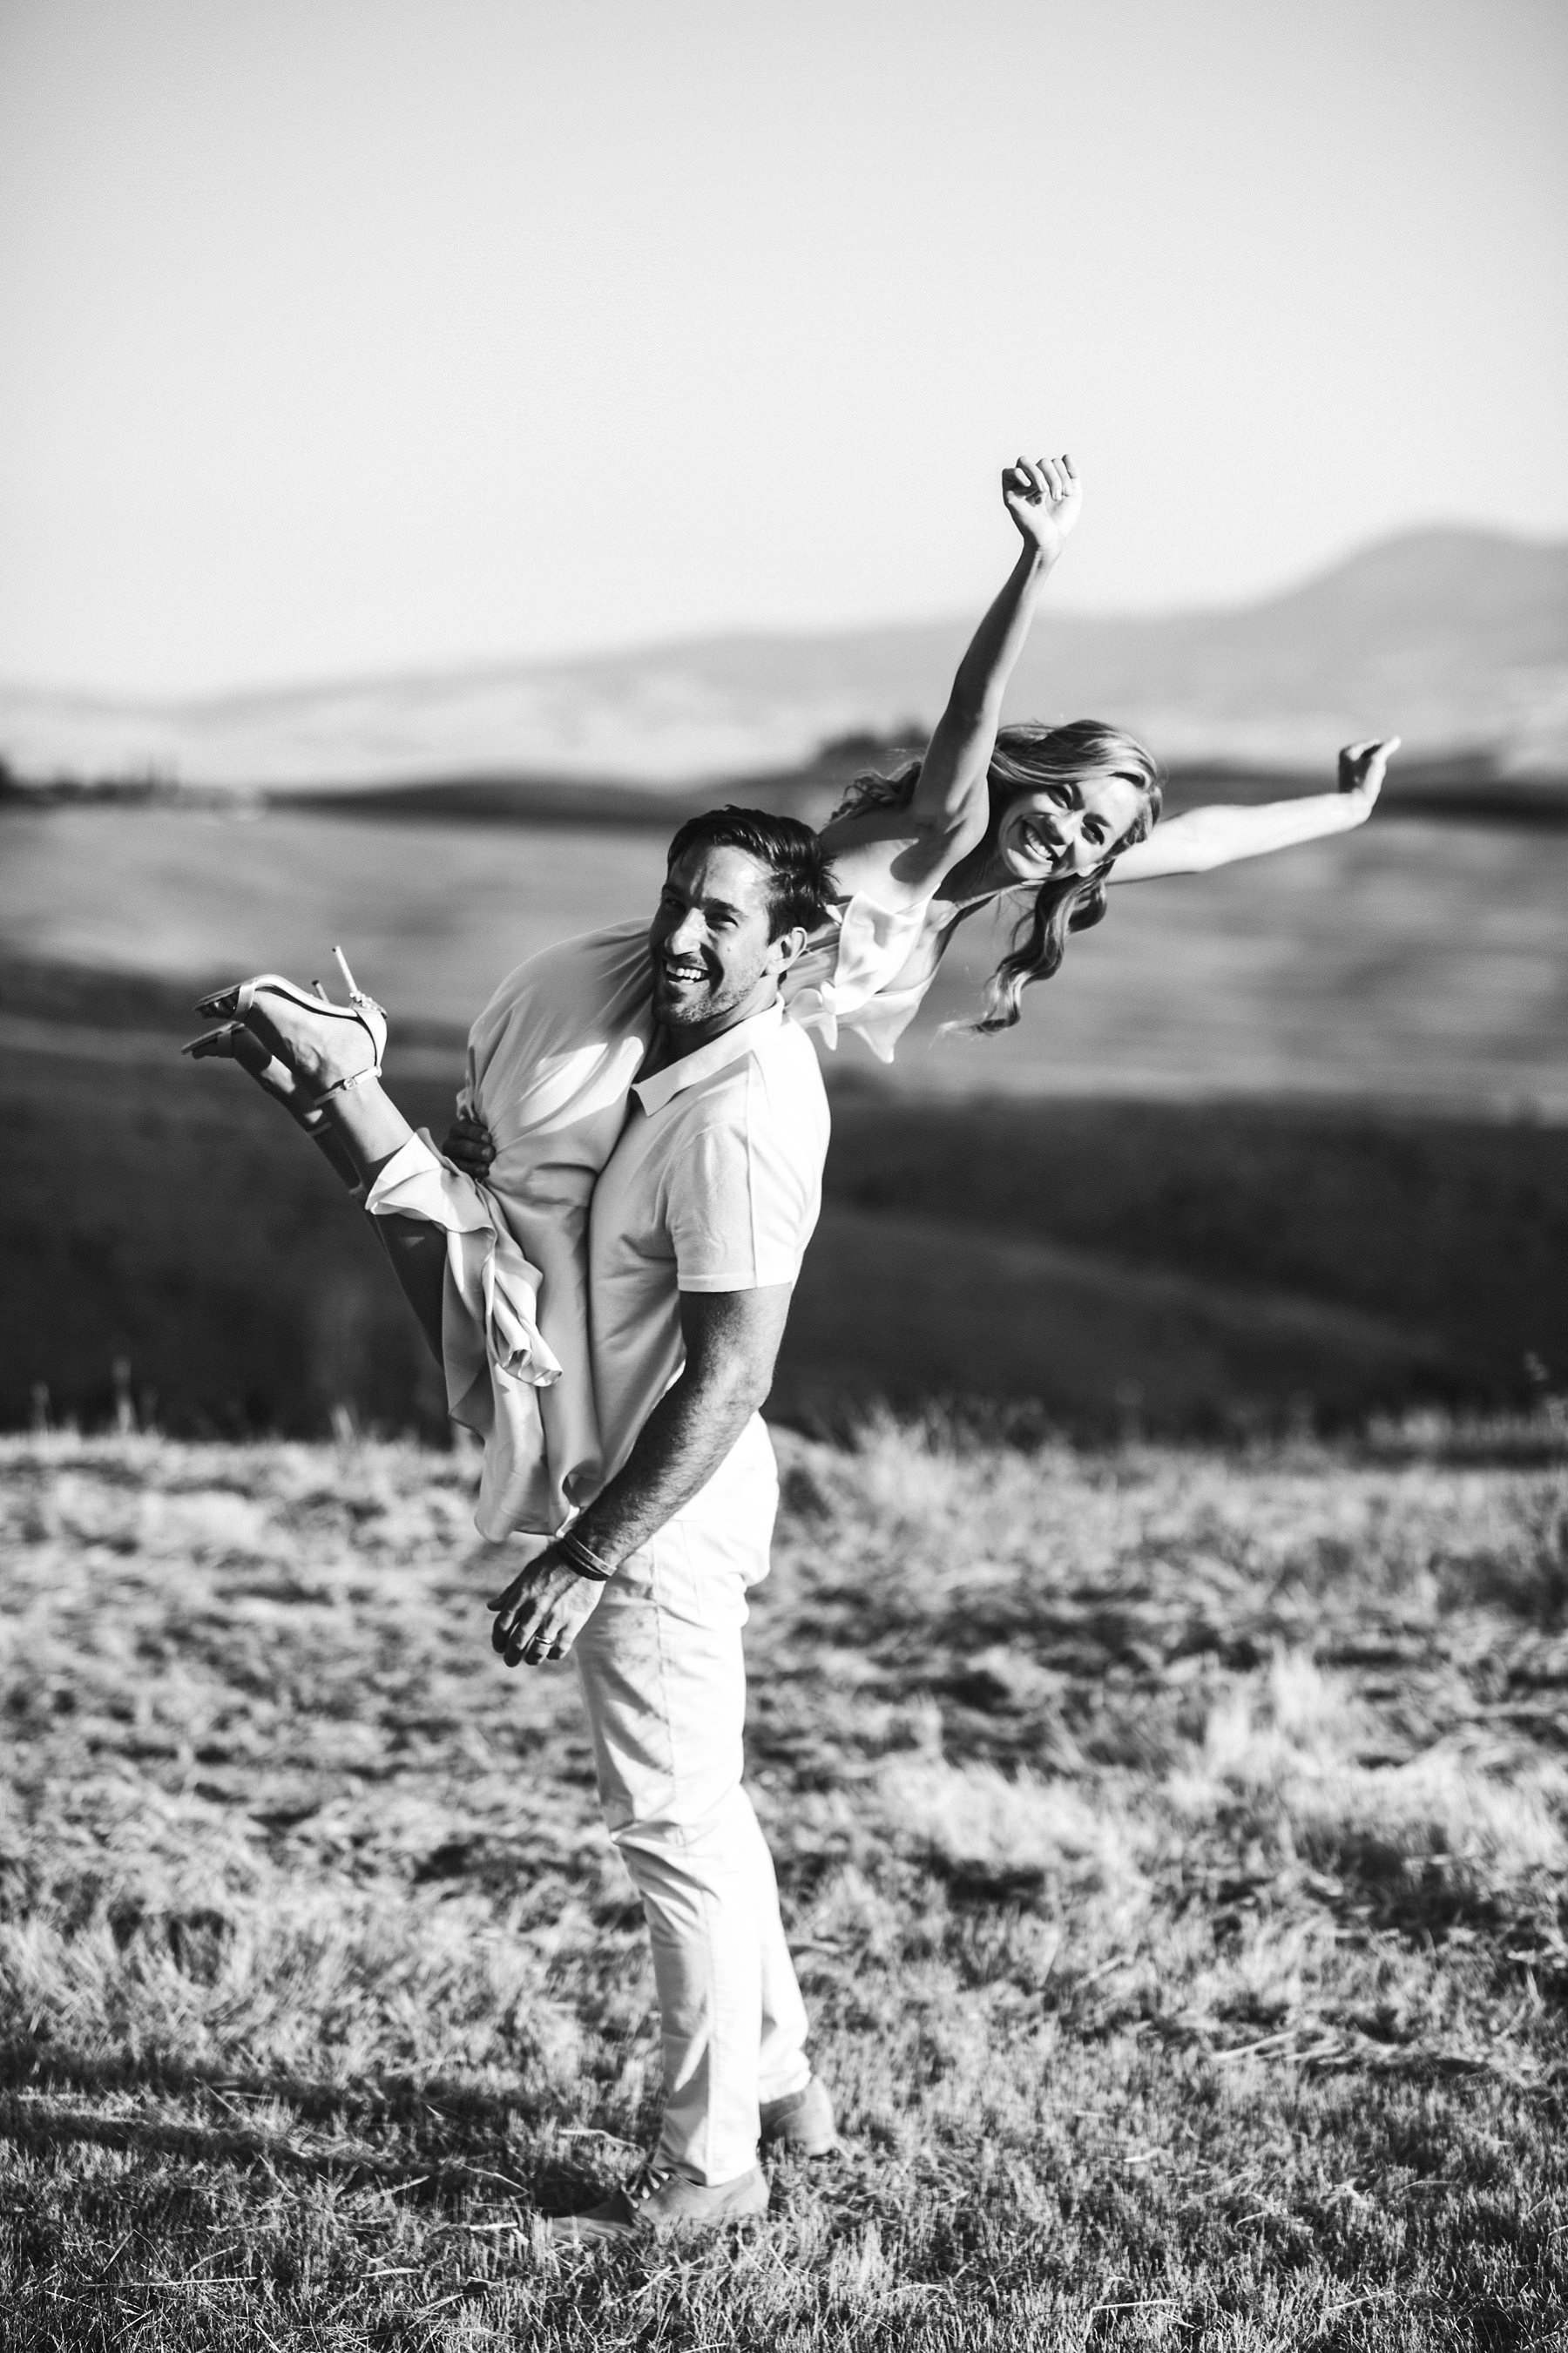 Renewing vows in Val D'Orcia, Italy with a special and unforgettable elopement session in the countryside near Pienza